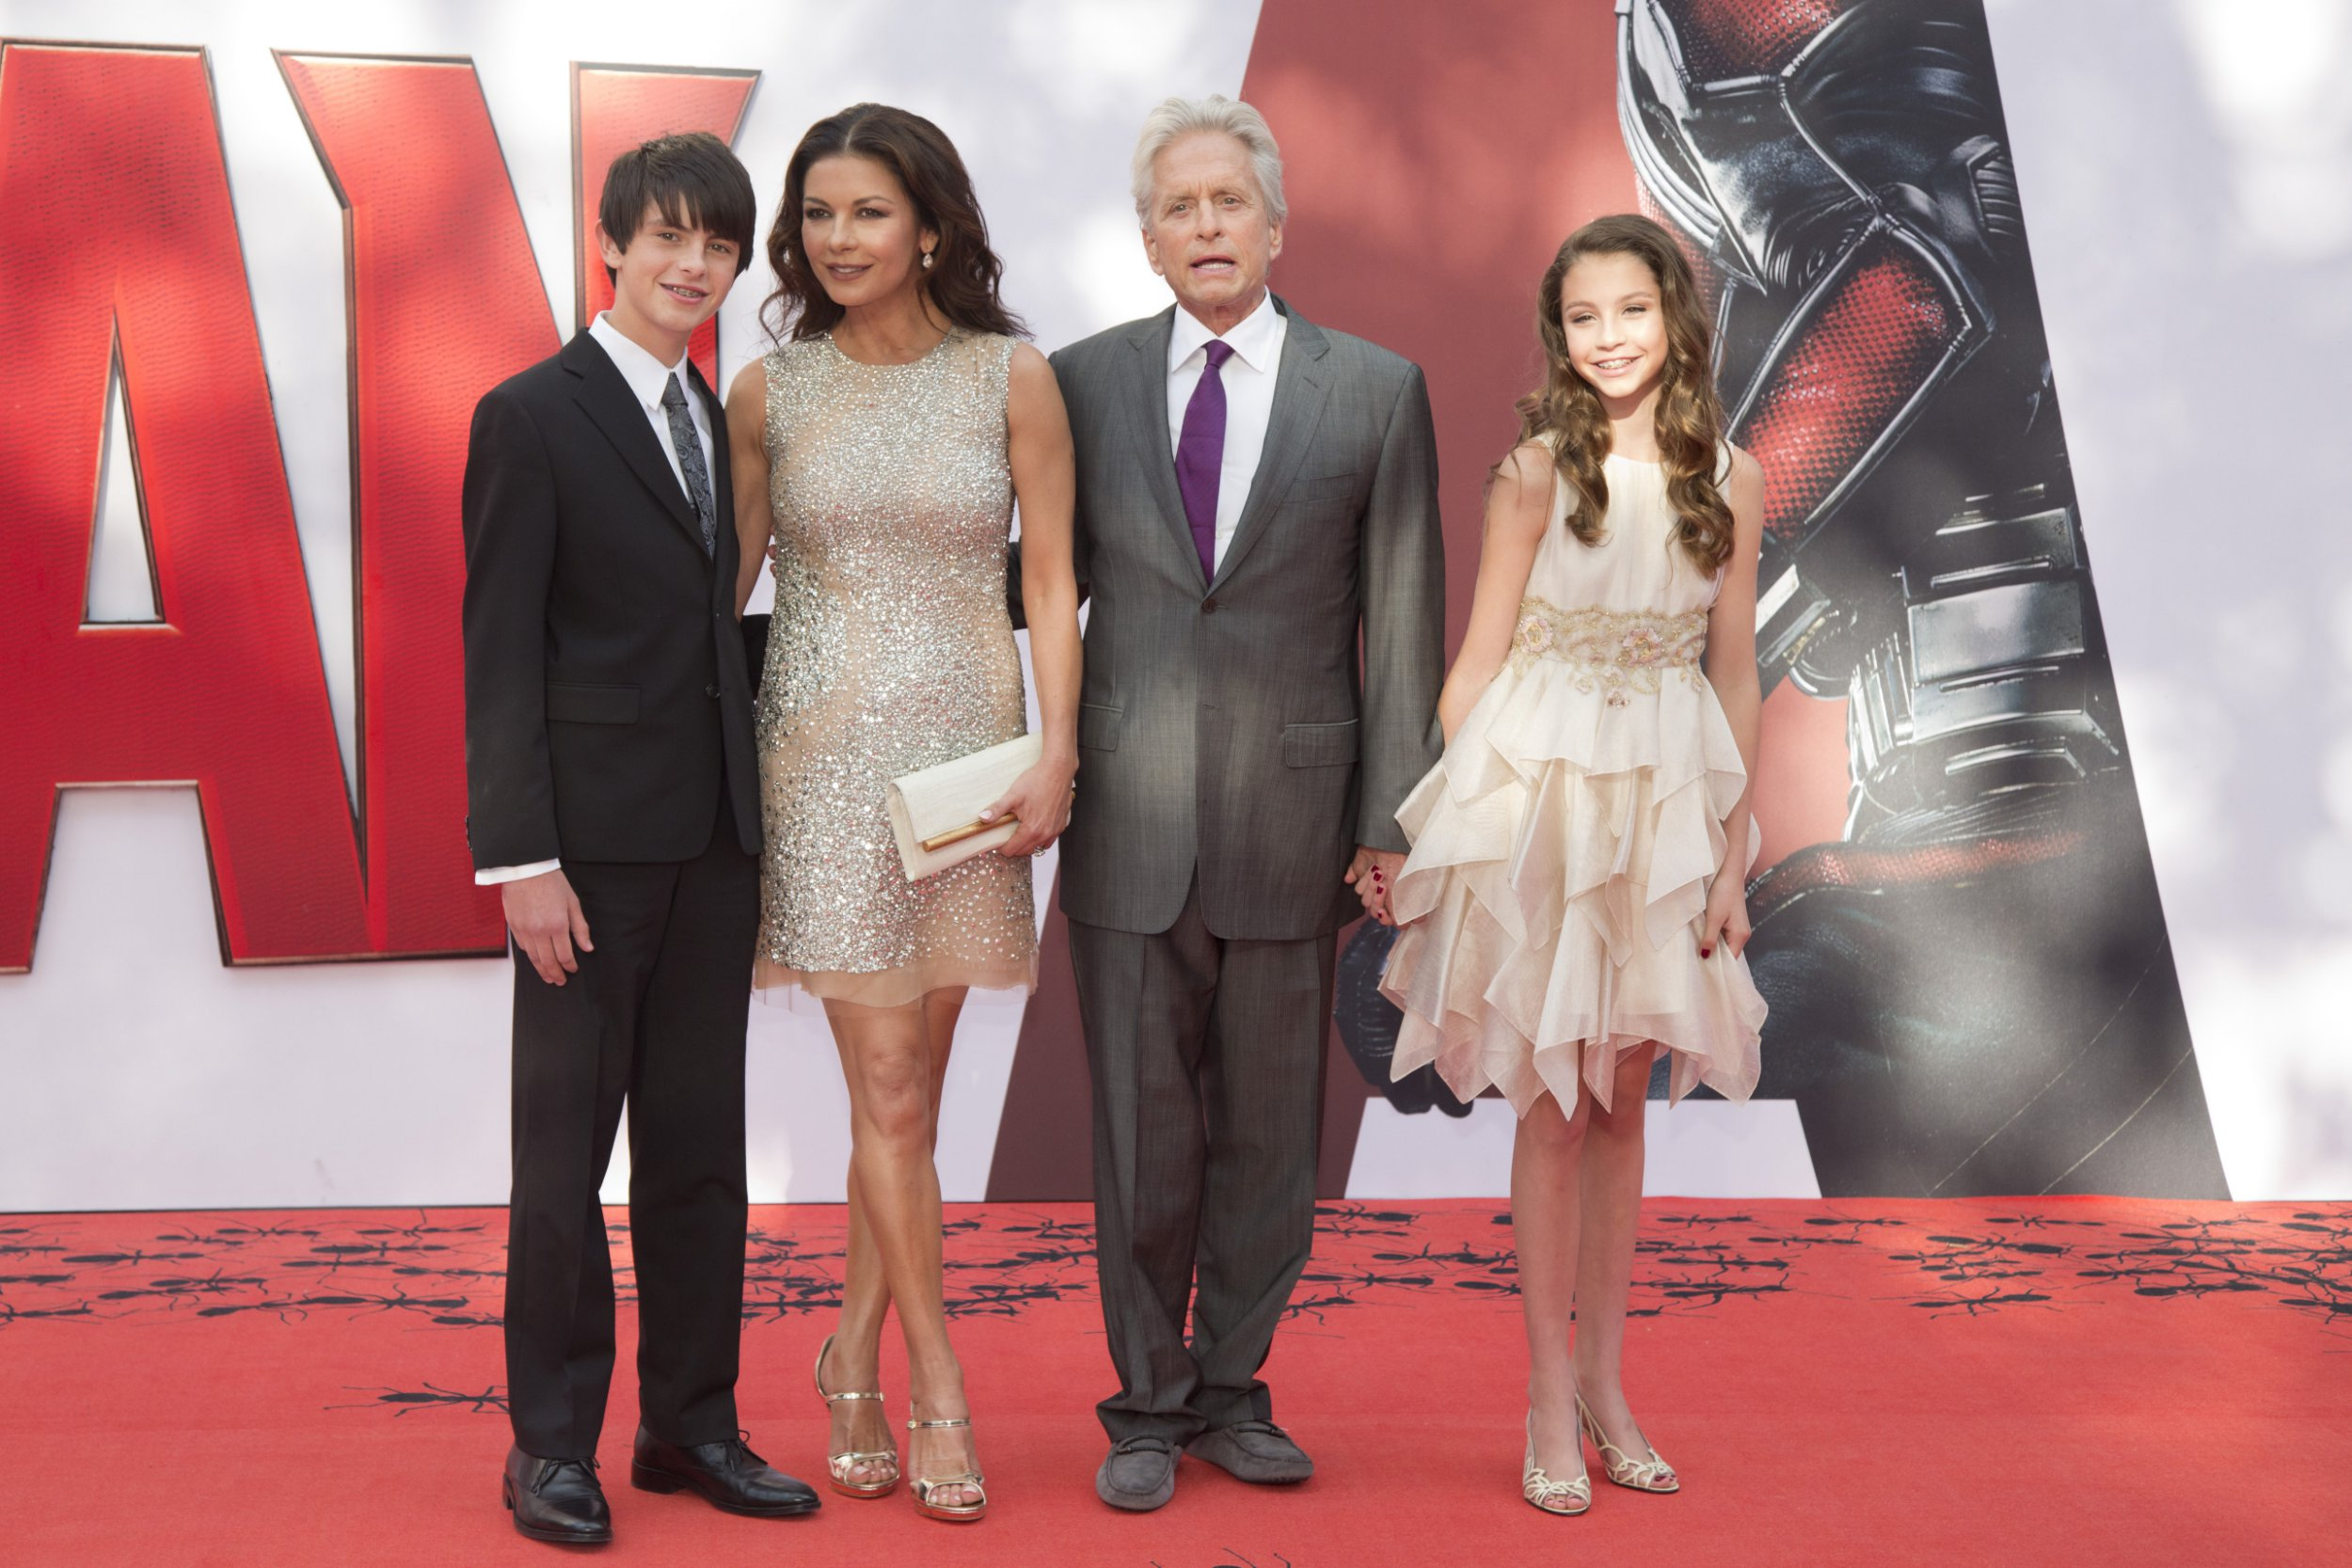 LONDON, ENGLAND - JULY 8: Catherine Zeta-Jones and Michael Douglas with their children Dylan and Carys as they attend the European Premiere of Marvel's 'Ant-Man' at the Odeon Leicester Square on July 8, 2015 in London, England.(Photo by Julian Parker/UK Press via Getty Images)